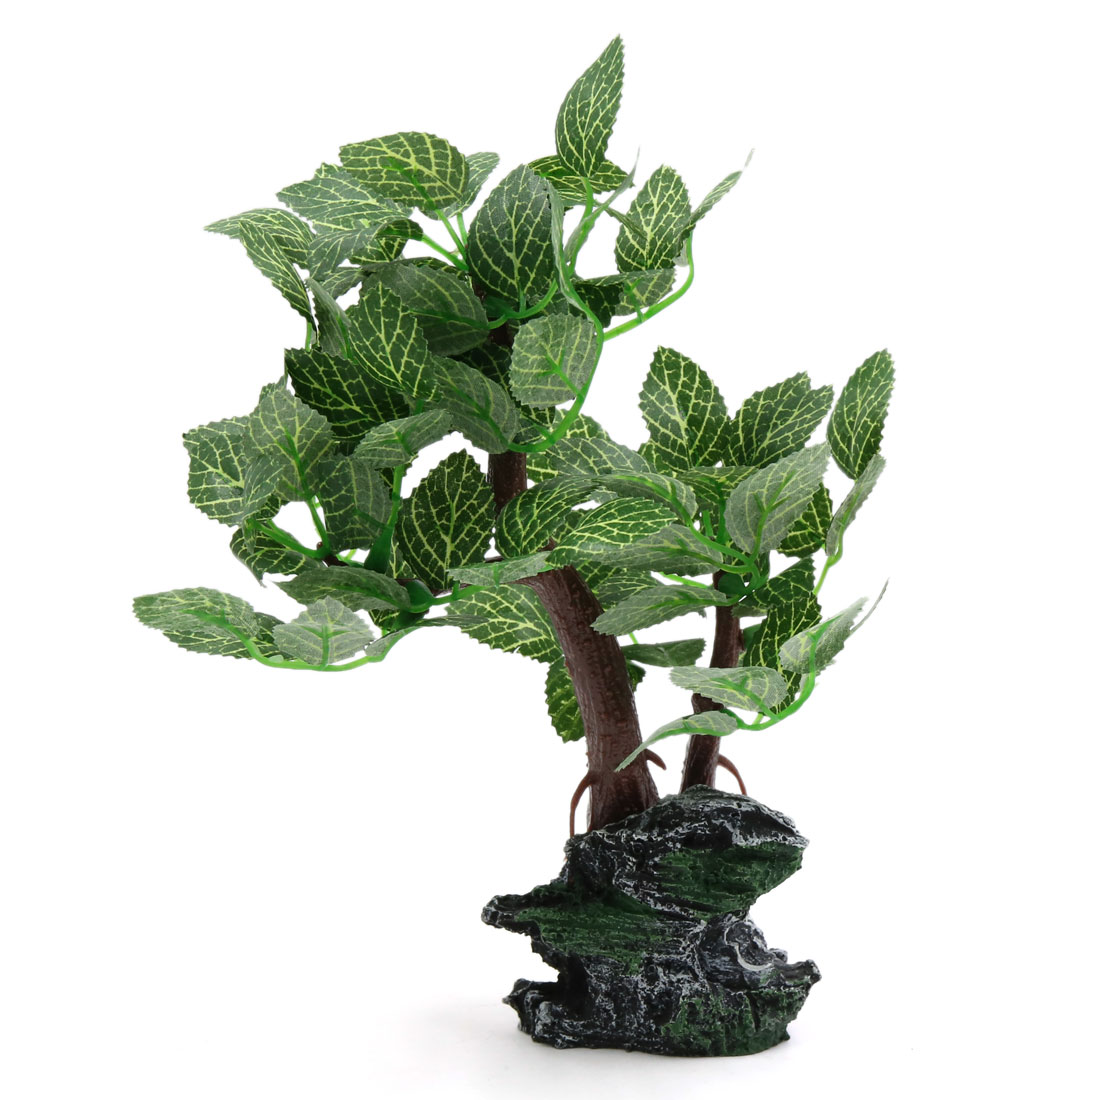 Lifelike Plants Green Plastic Lifelike Plant Decorative Ornament Aquarium